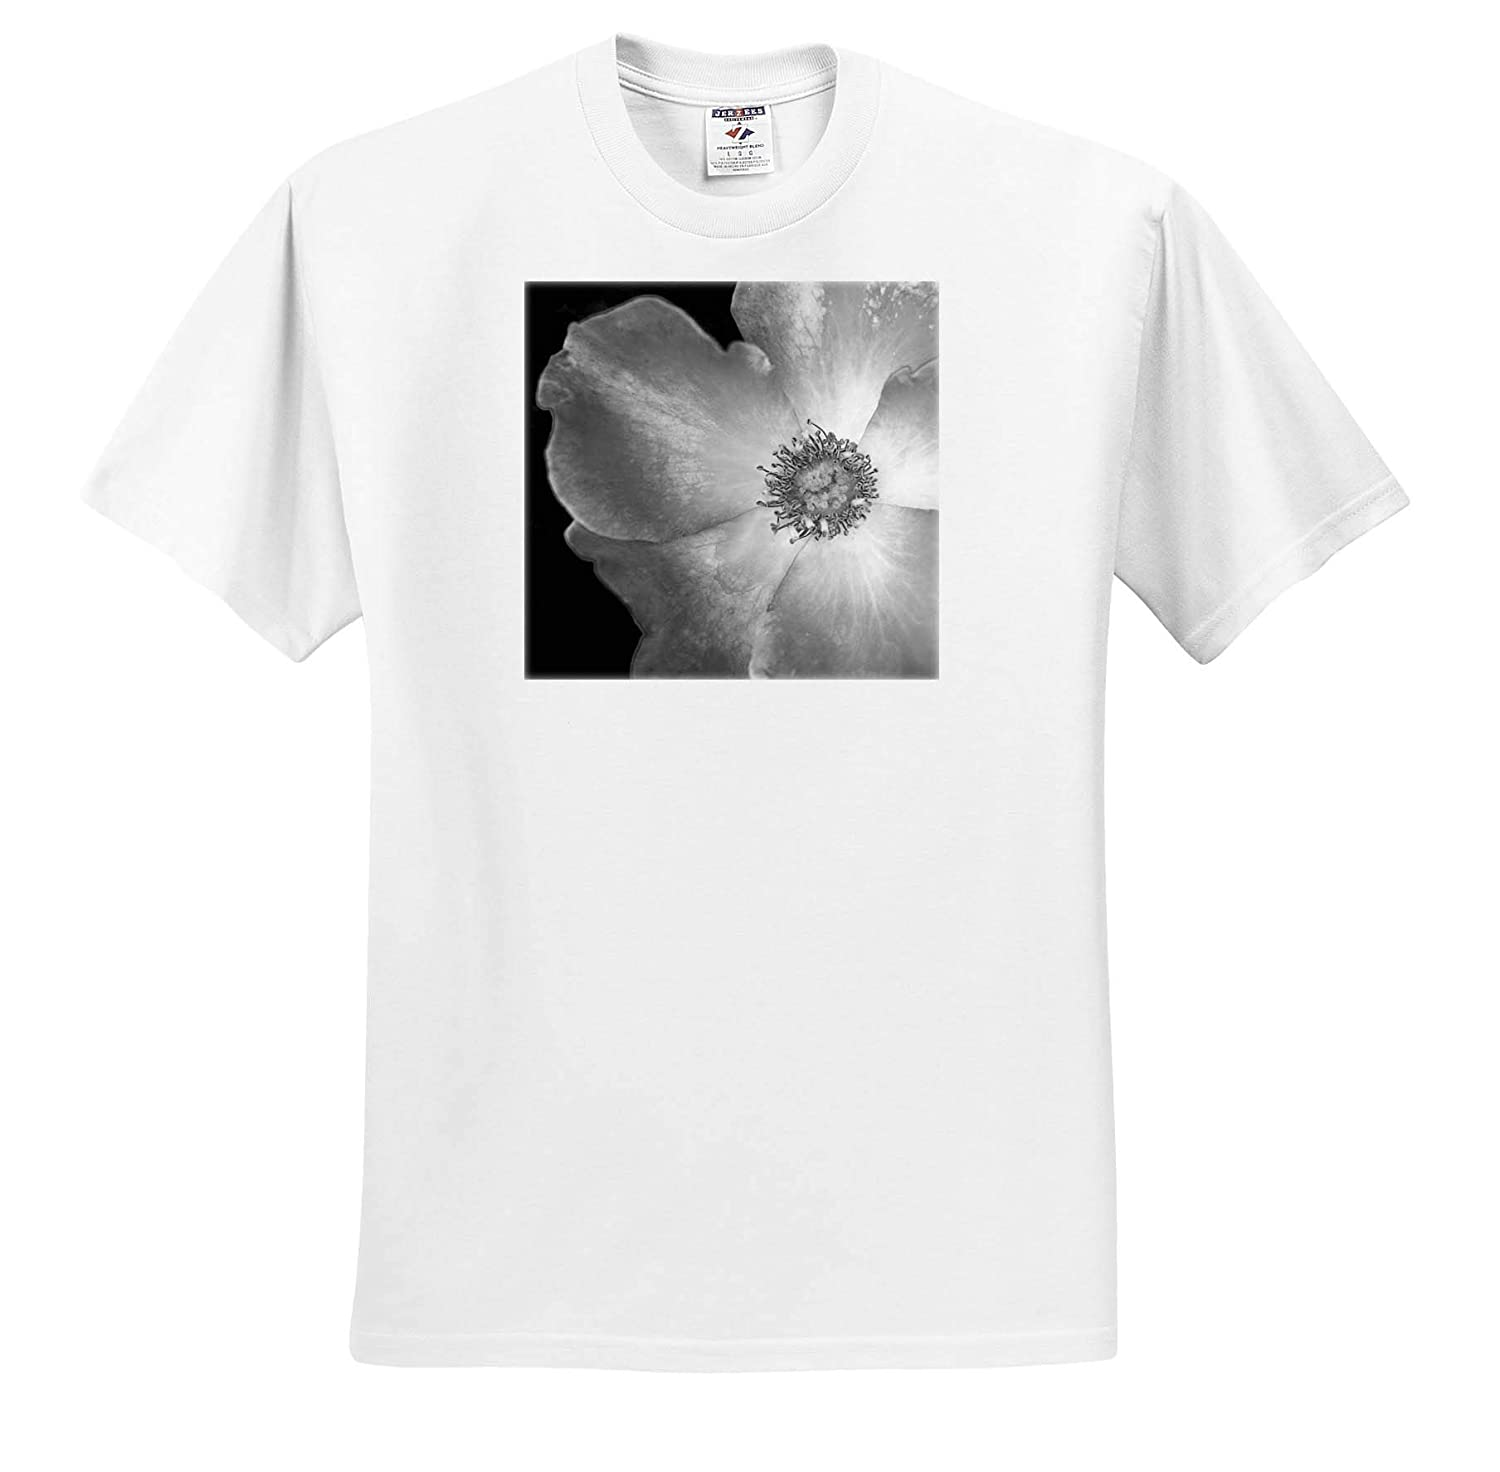 Flowers - Adult T-Shirt XL ts/_312227 3dRose Stamp City Black and White Macro Photograph of a Playboy Rose